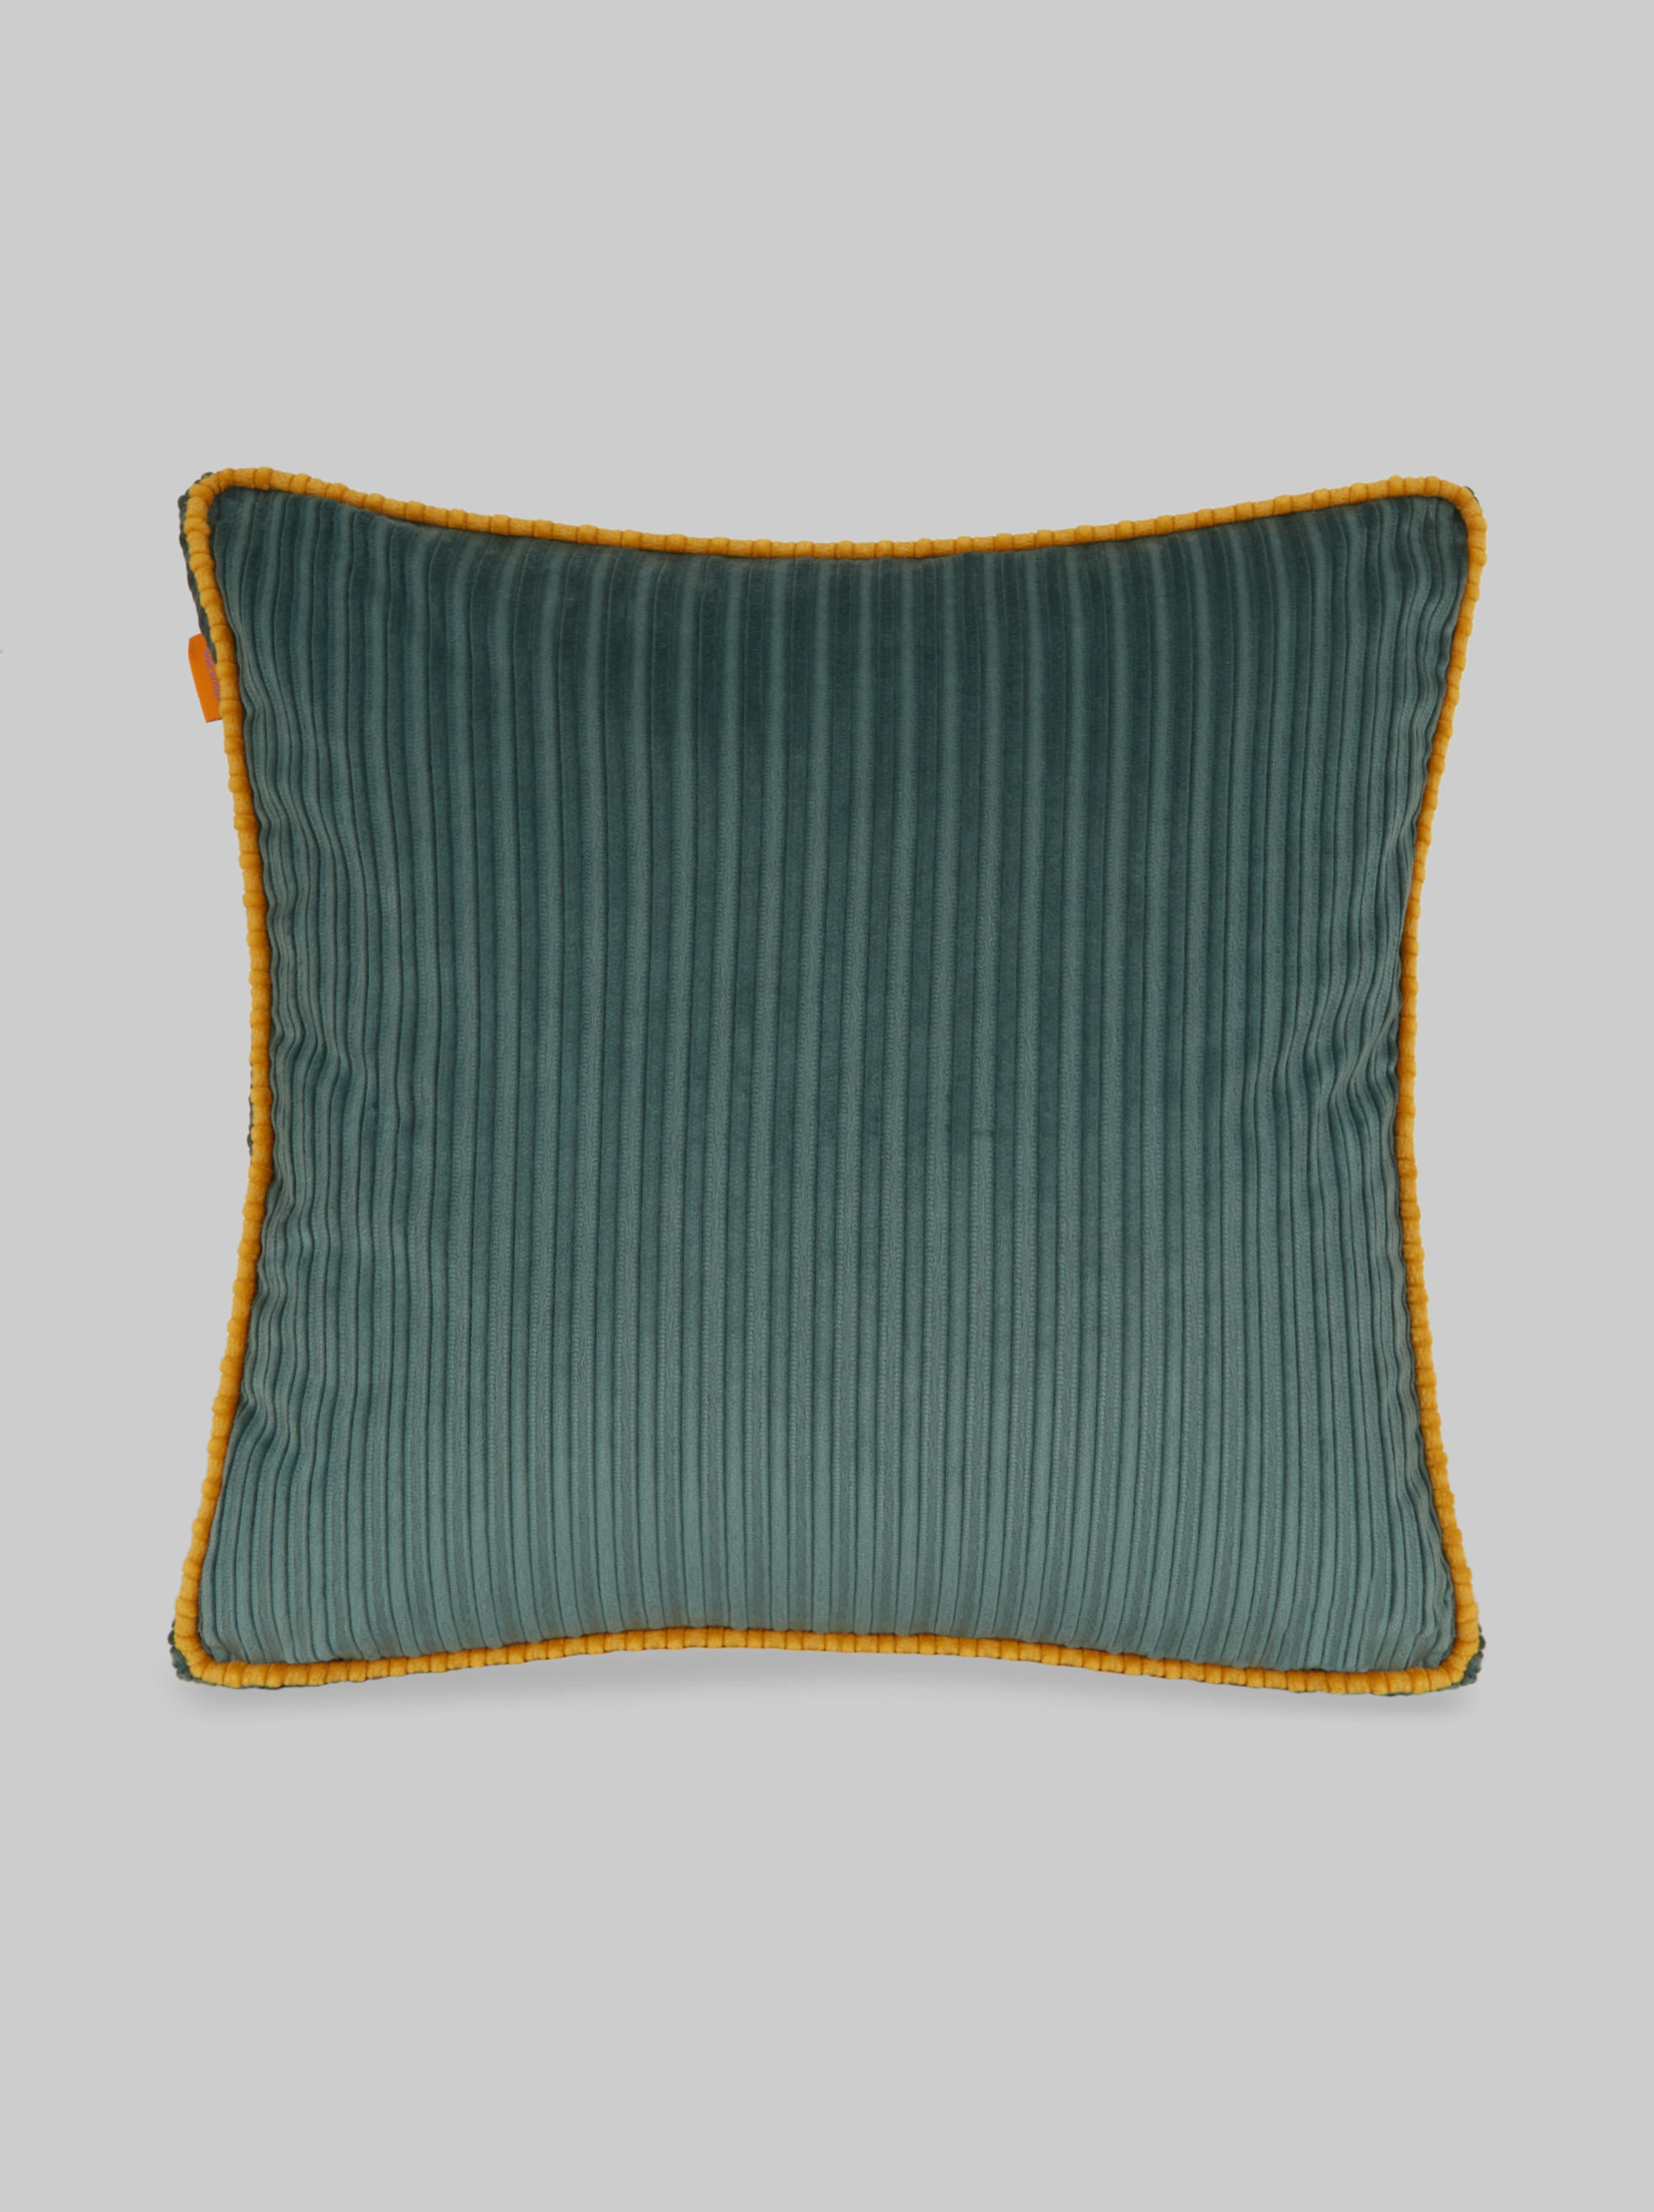 COTTON VELVET CUSHION WITH JUNGLE PATTERNS